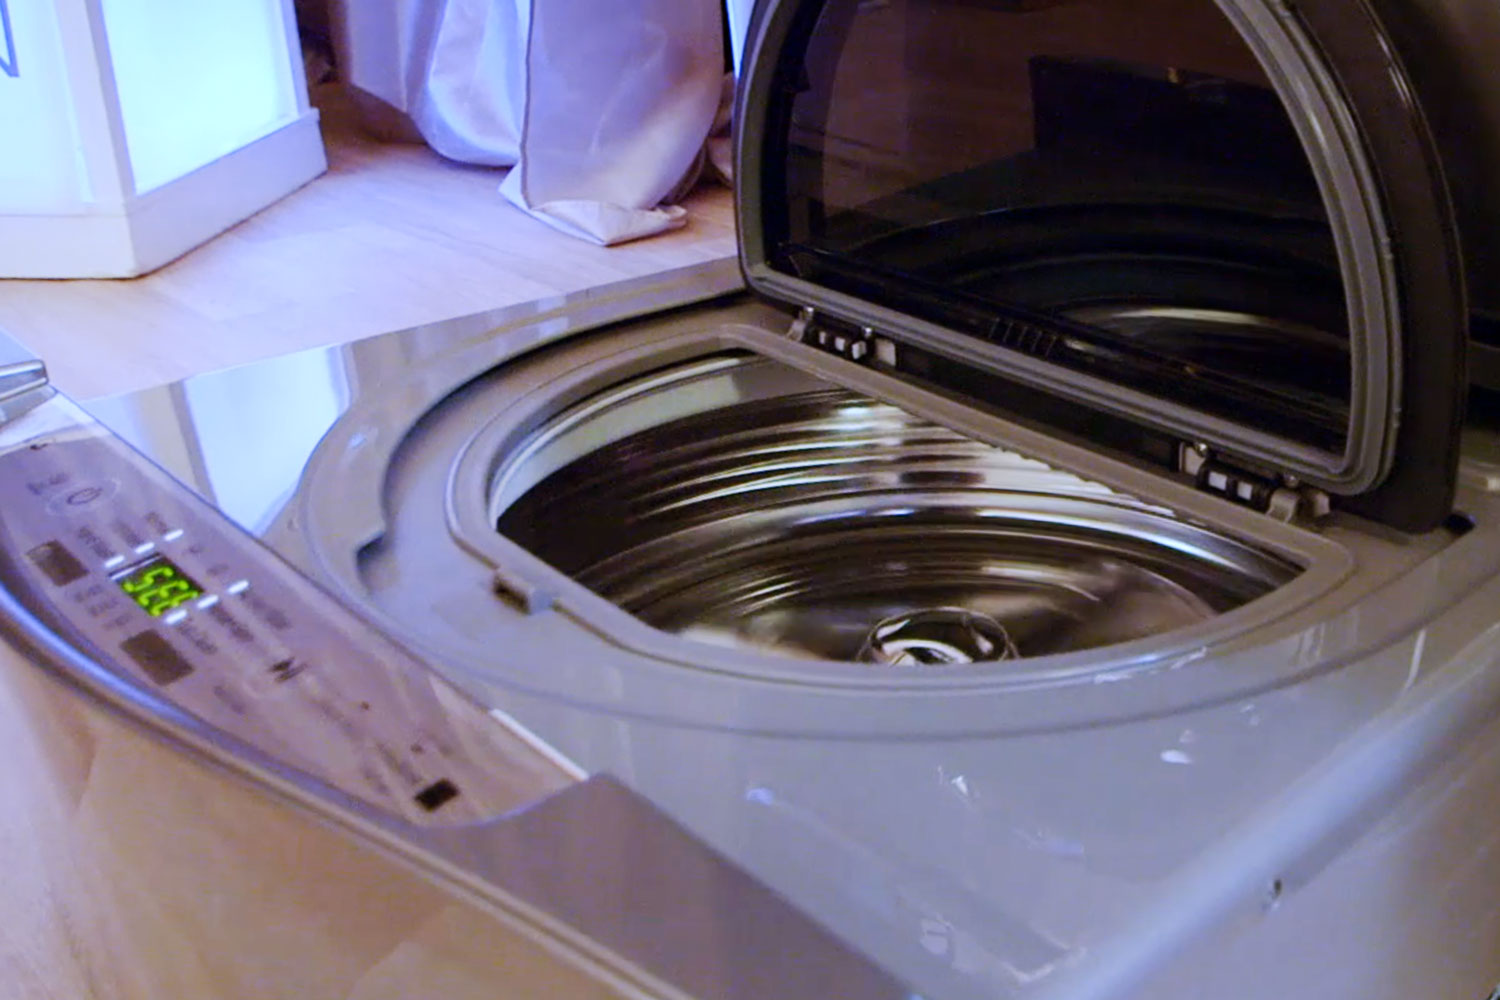 LG washer and dryer with SmartThinQ® technology